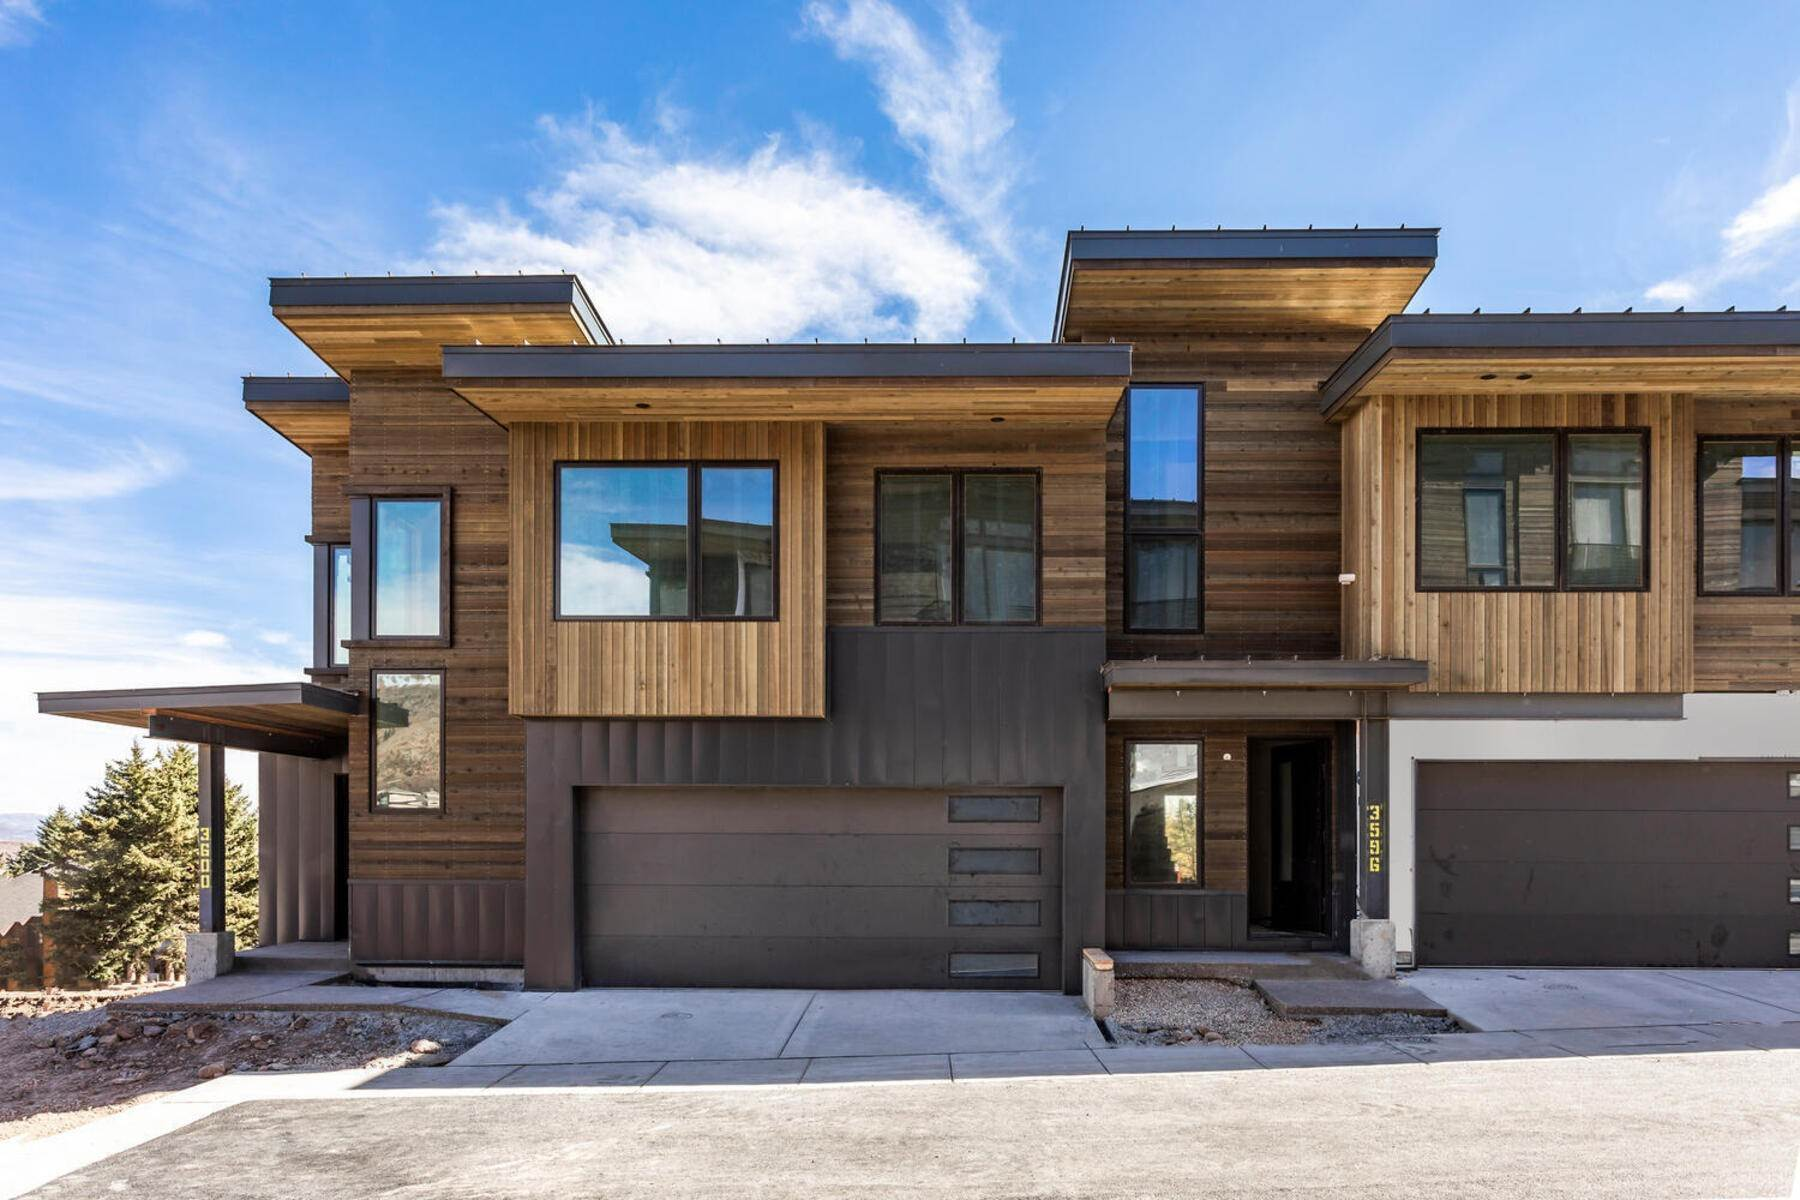 townhouses for Sale at Ski-In Town Homes in Canyons Village 3482 Ridgeline Drive Park City, Utah 84098 United States